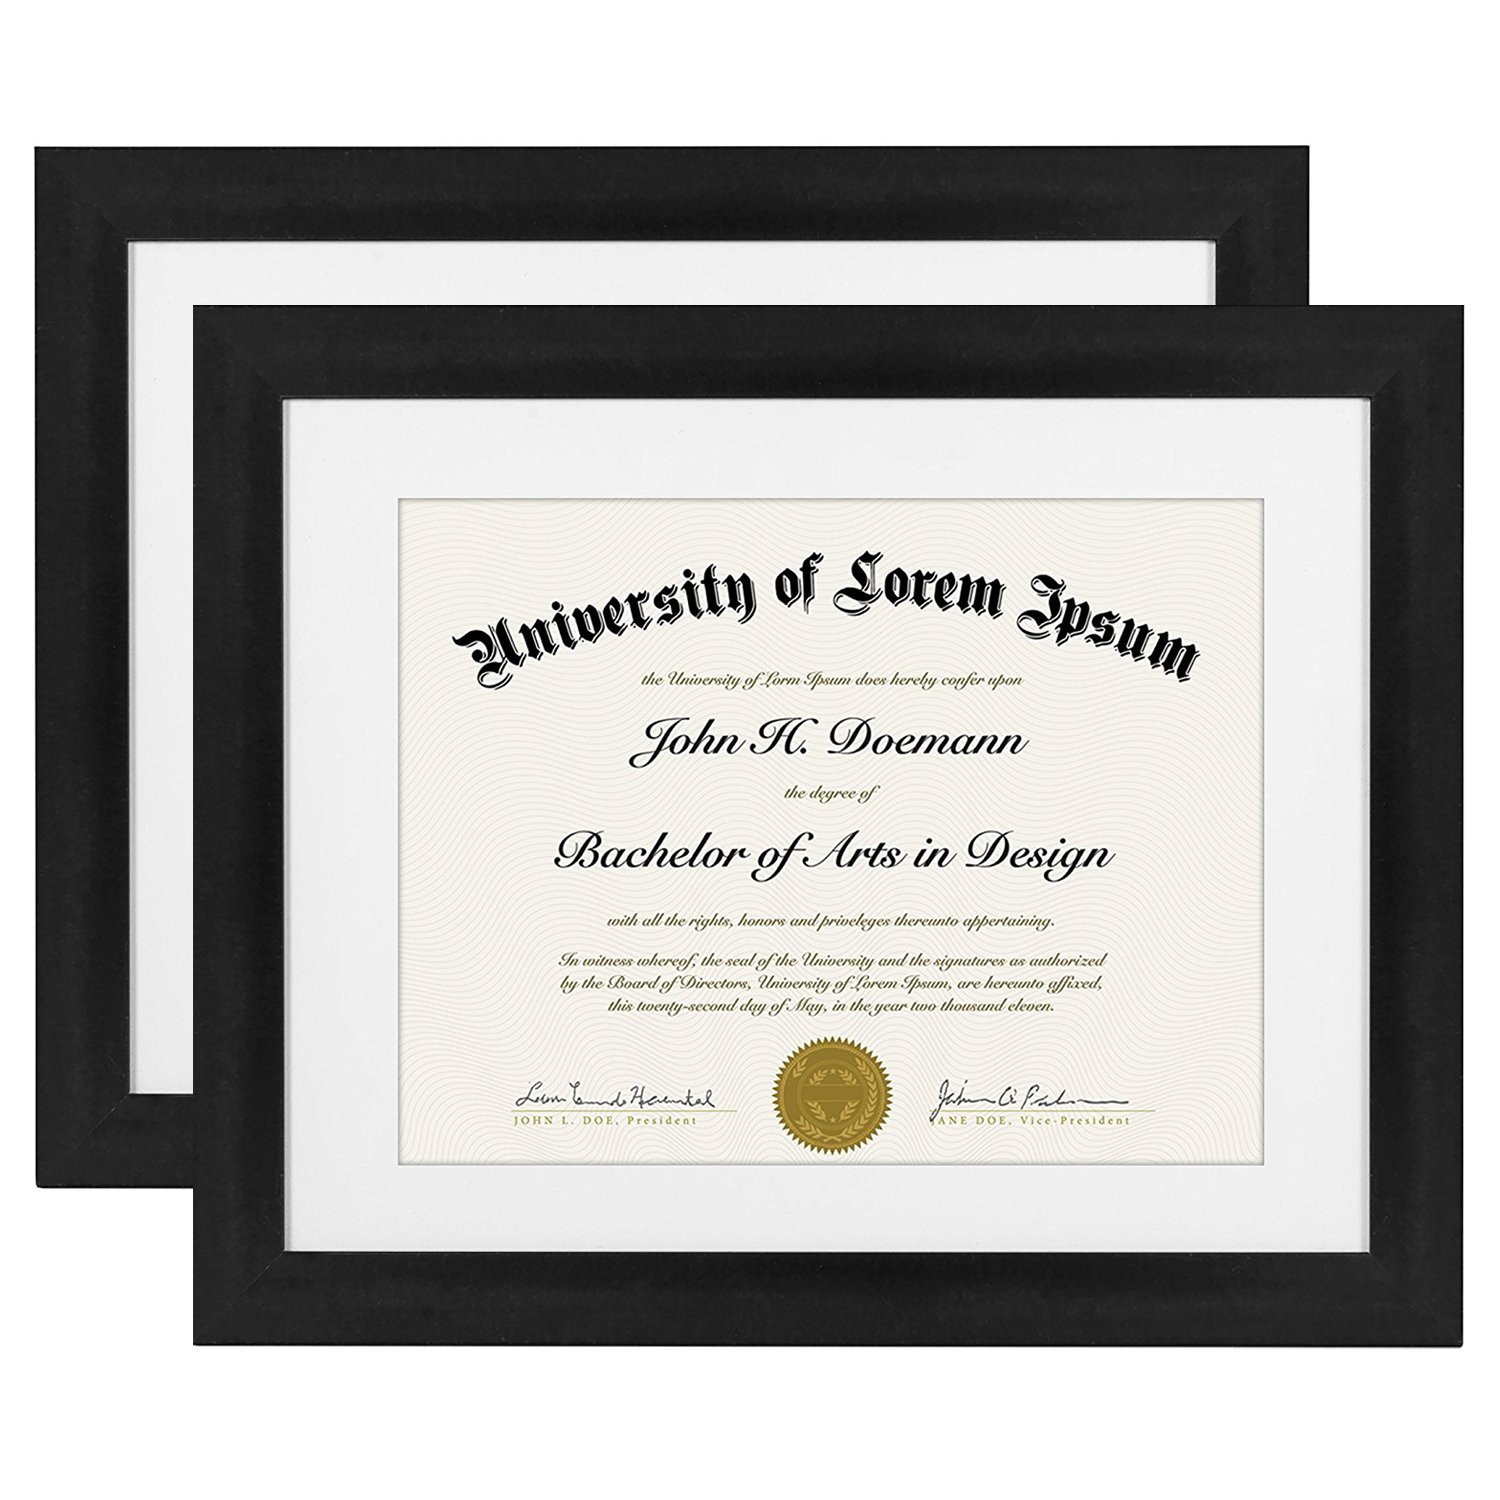 Americanflat 2 Pack - 11x14 Black Document Frames - Display Documents 8.5x11 with Mats - Display Documents 11x14 Without Mats